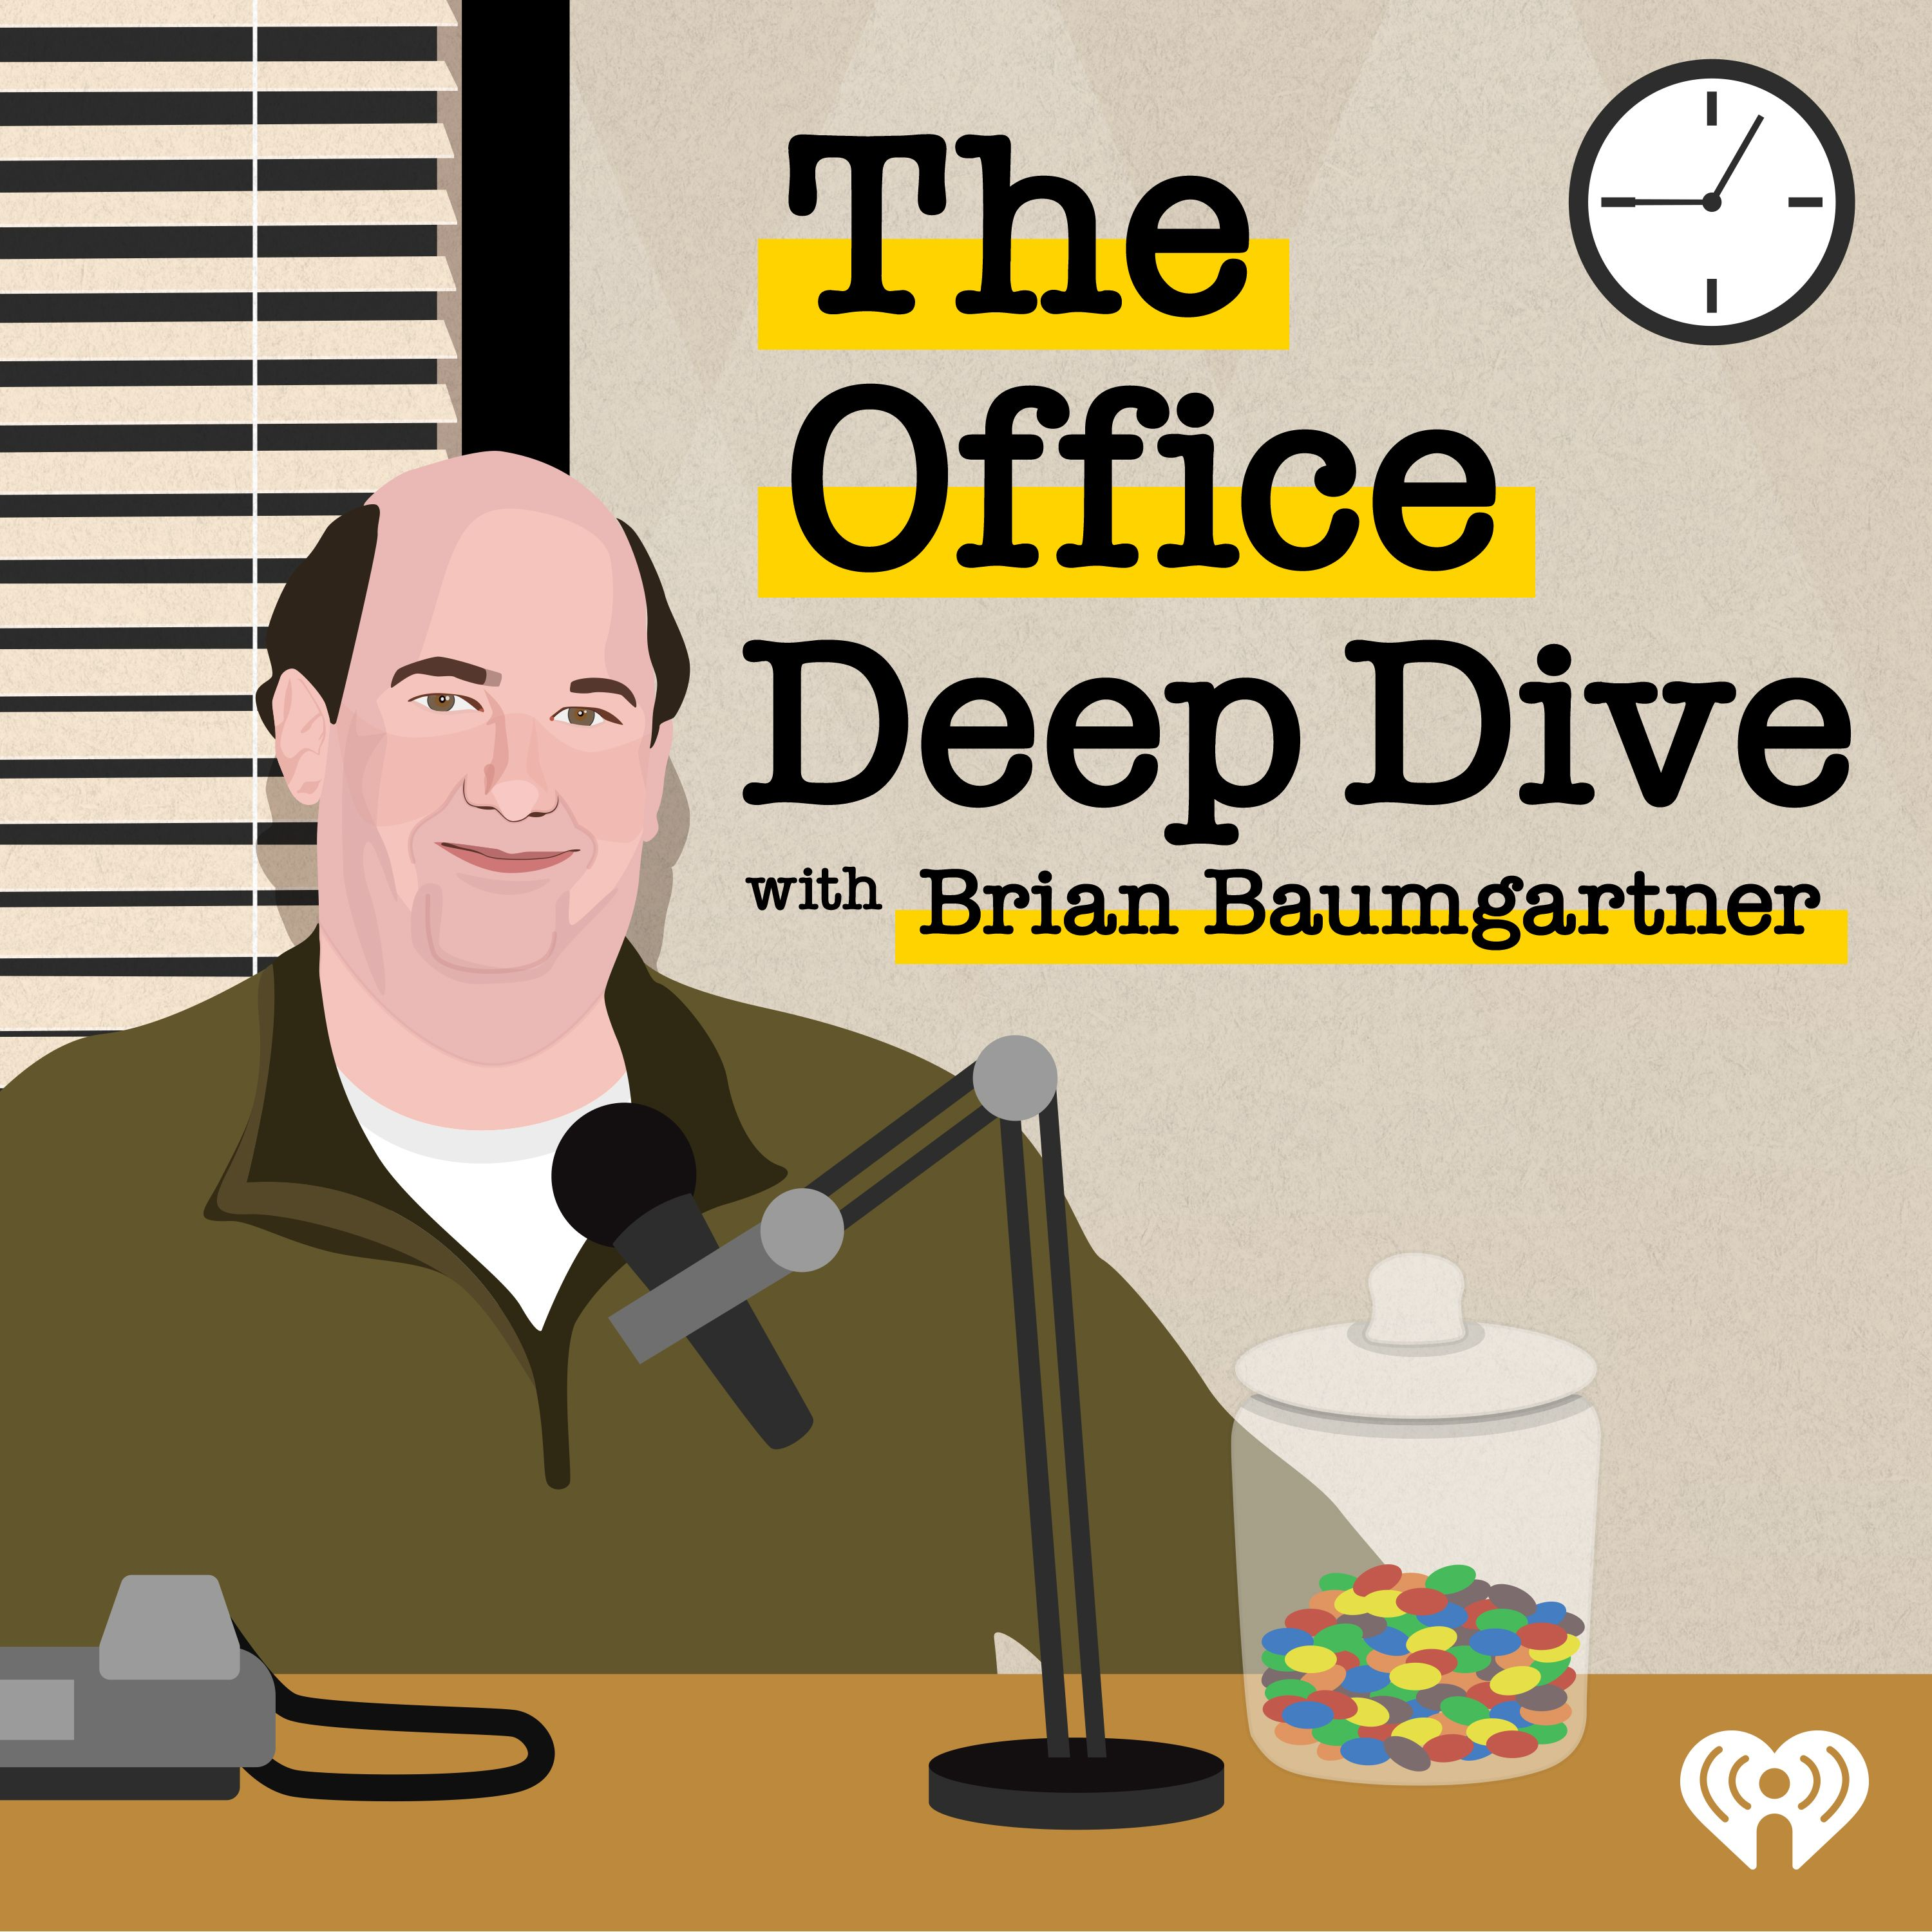 Introducing: 'The Office Deep Dive with Brian Baumgartner'